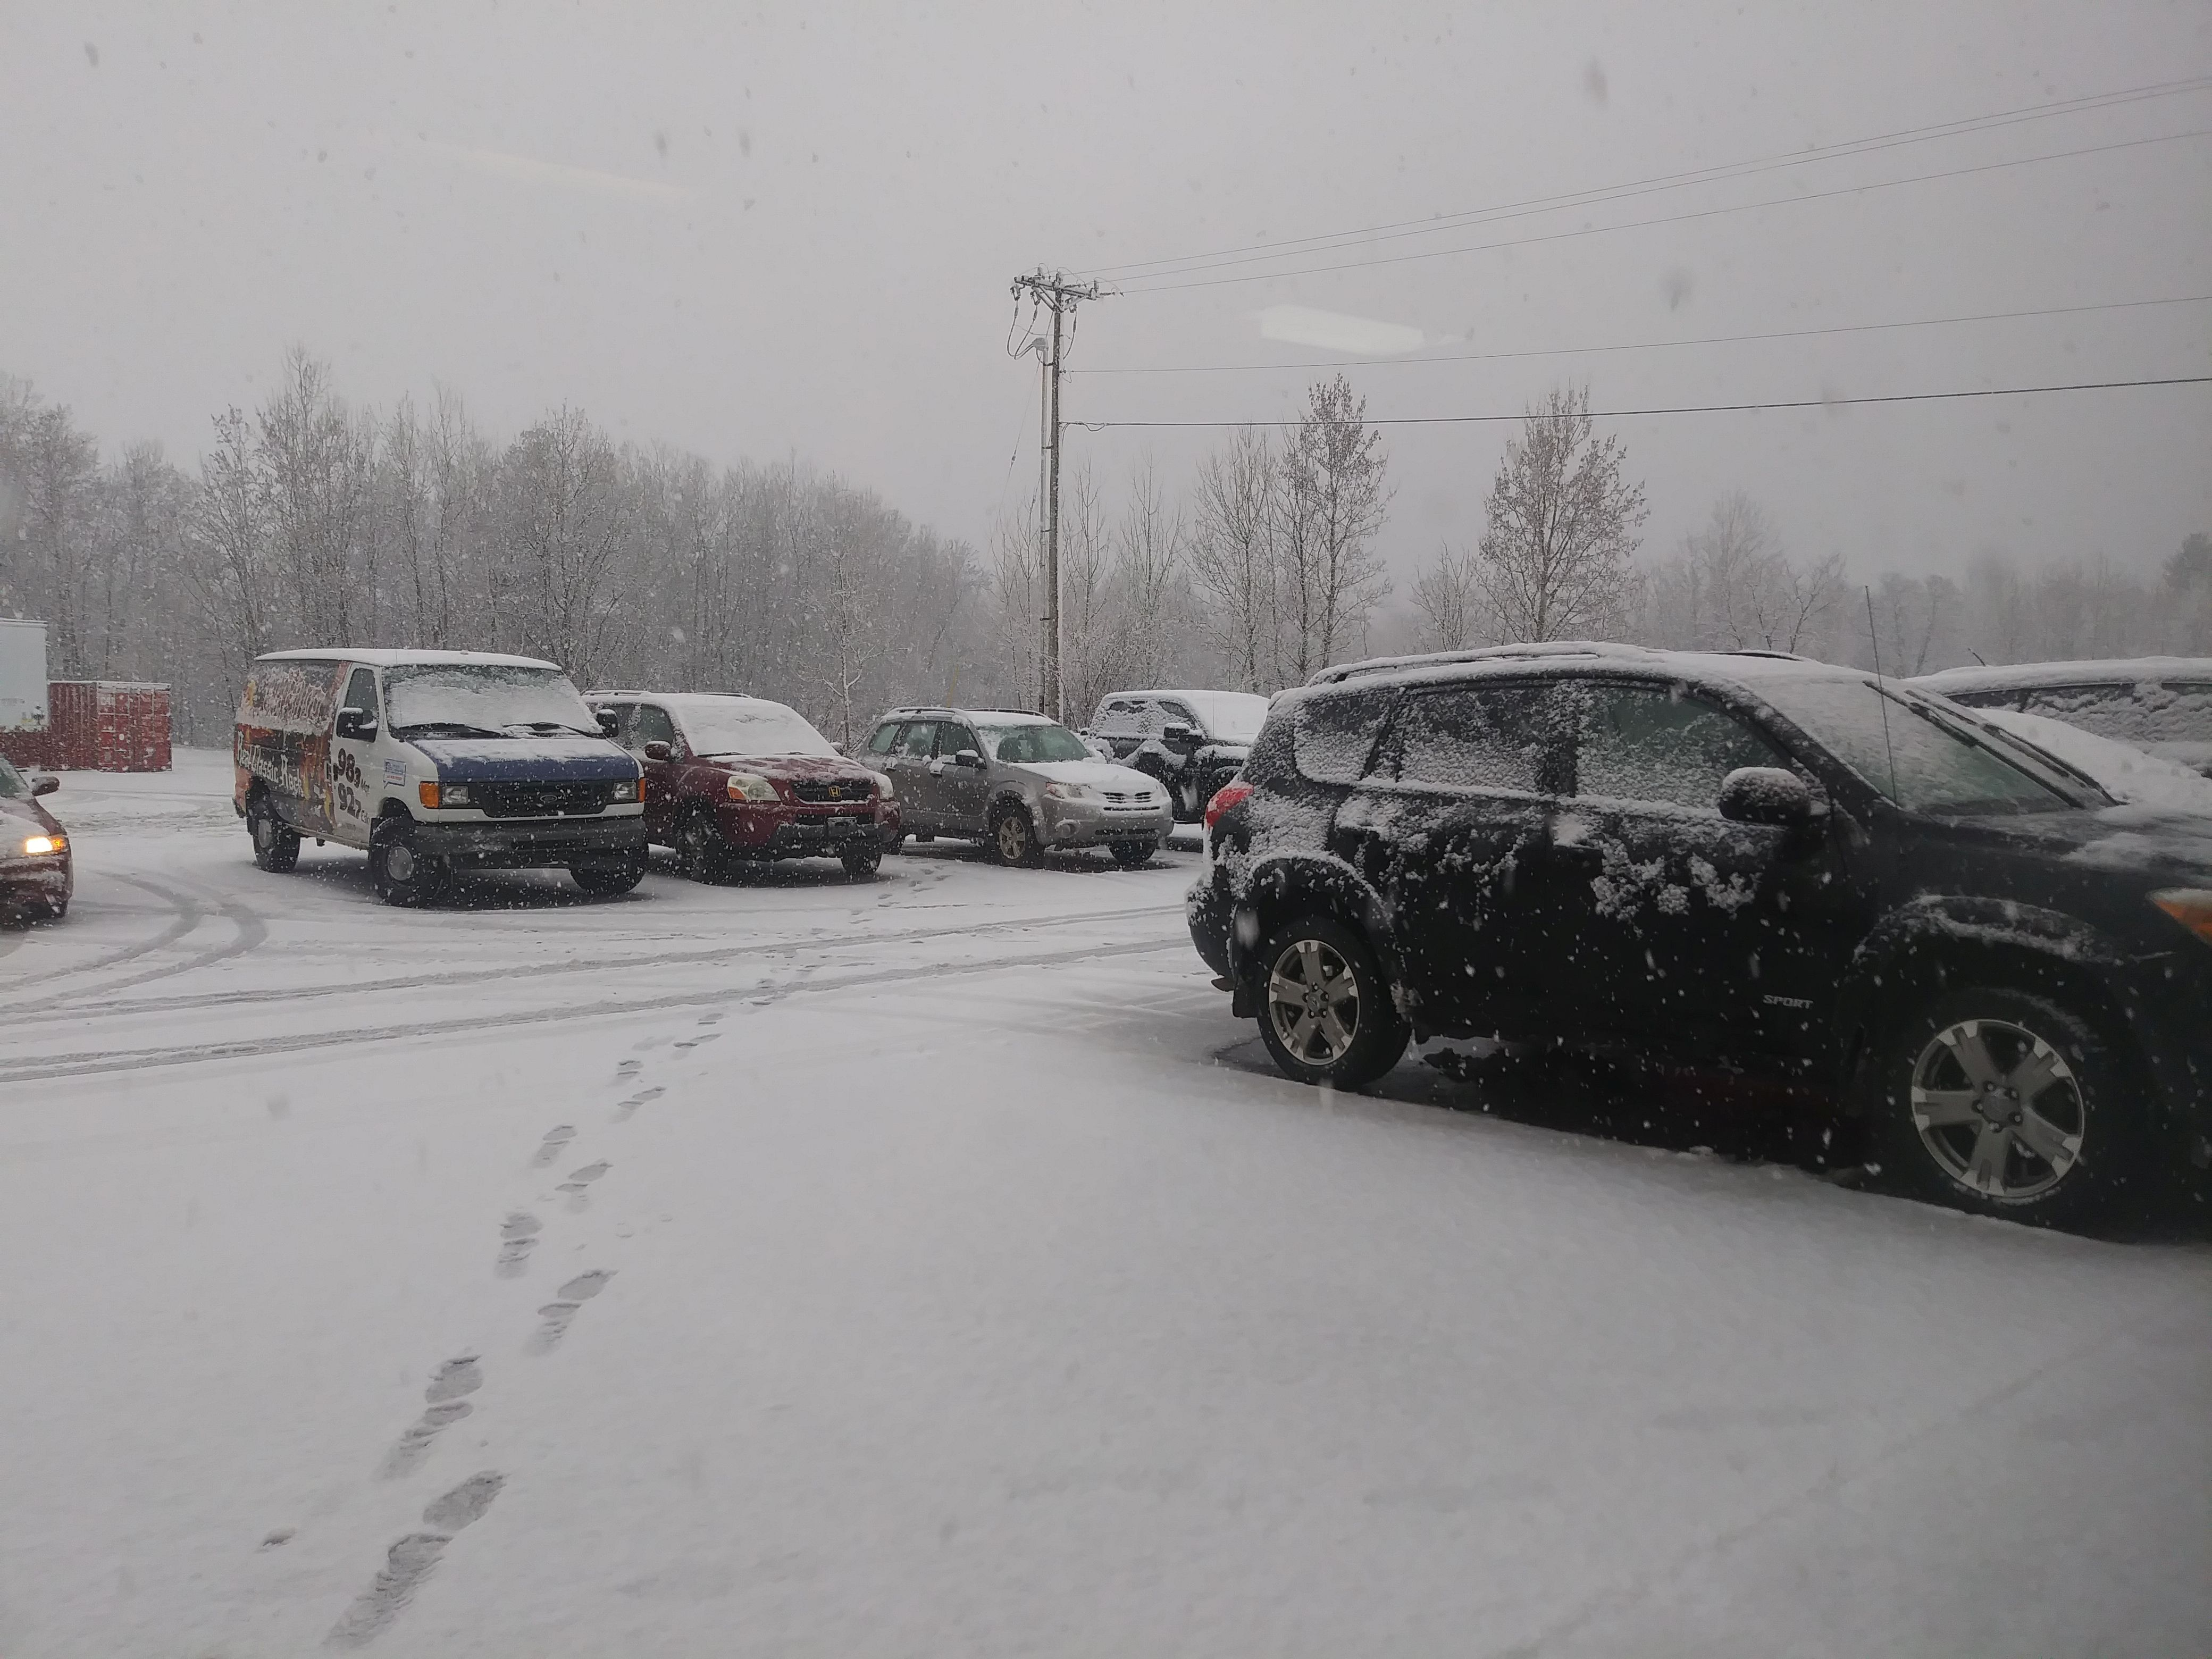 The GLR parking lot on May 1st